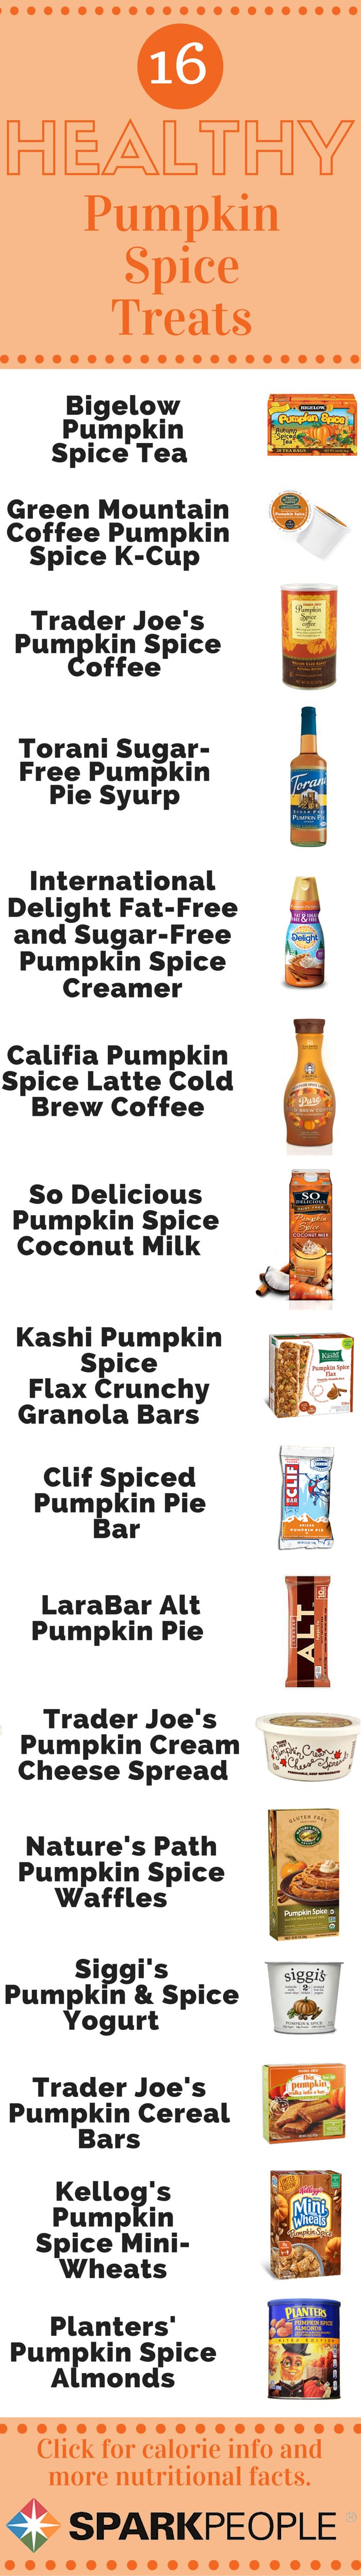 16 Seasonal Supermarket Treats Worth Trying. Try these yummy pumpkin foods with your family! | via @SparkPeople